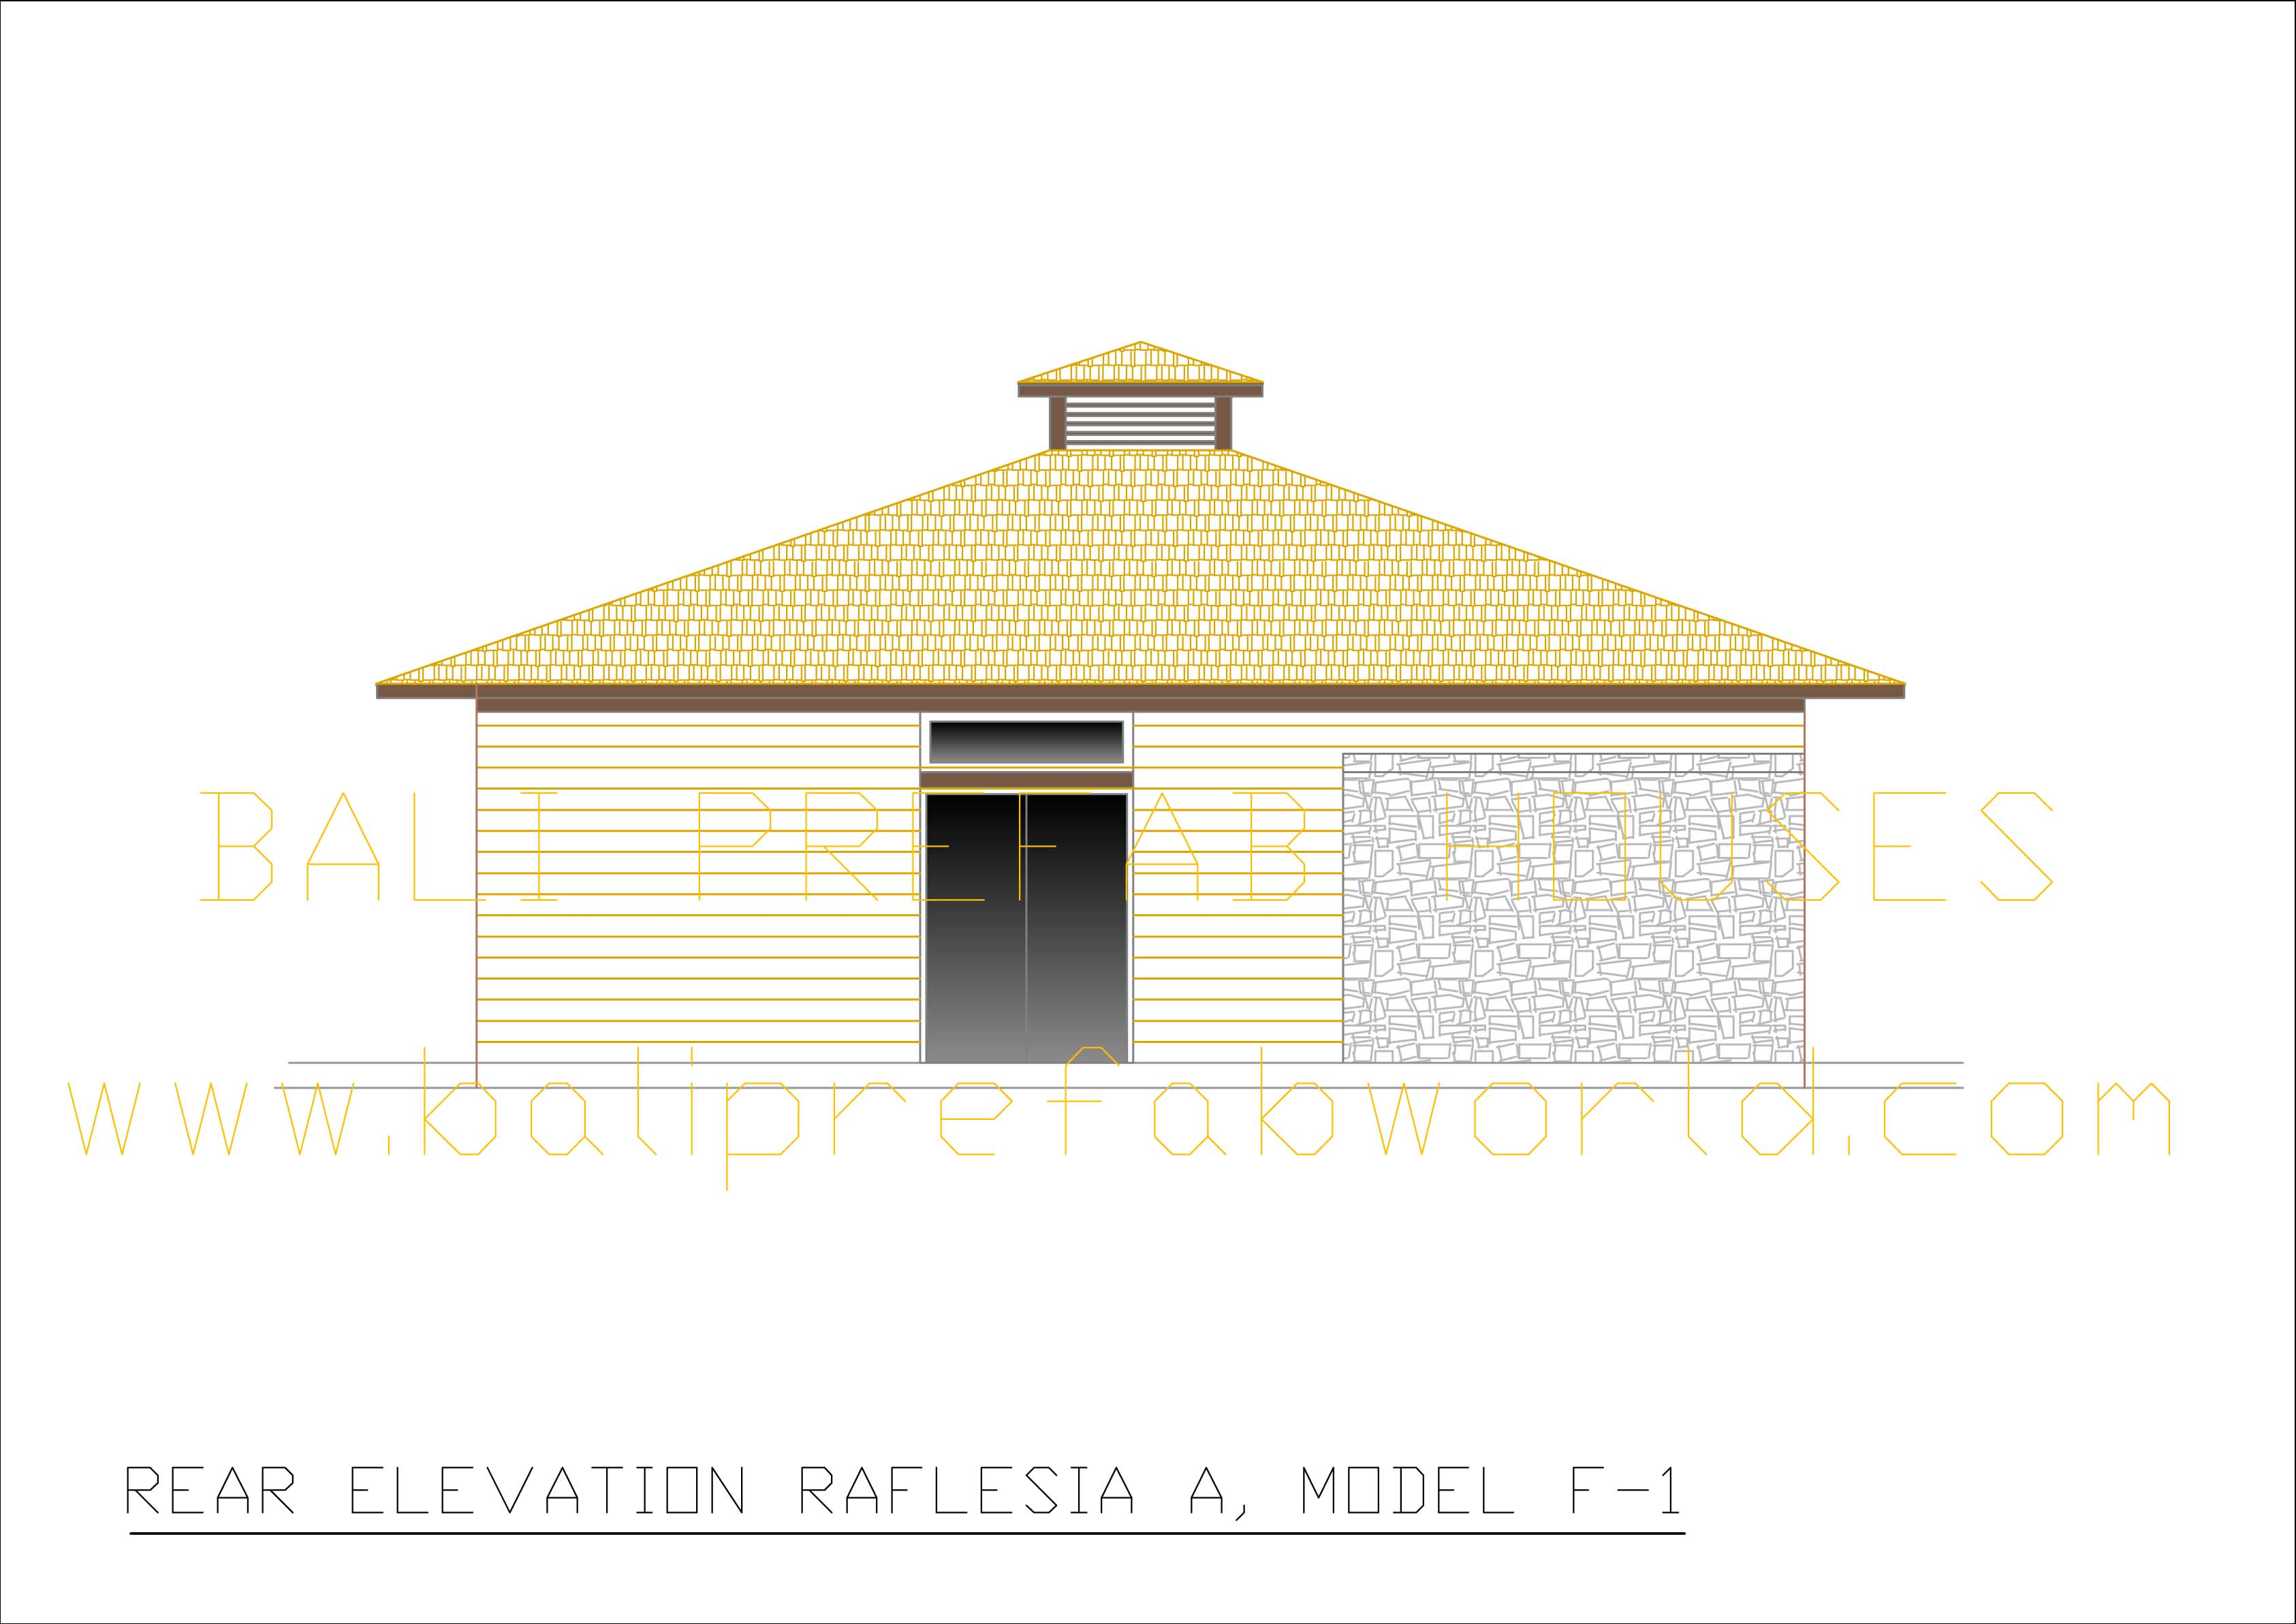 Raflesia-A rear elevation